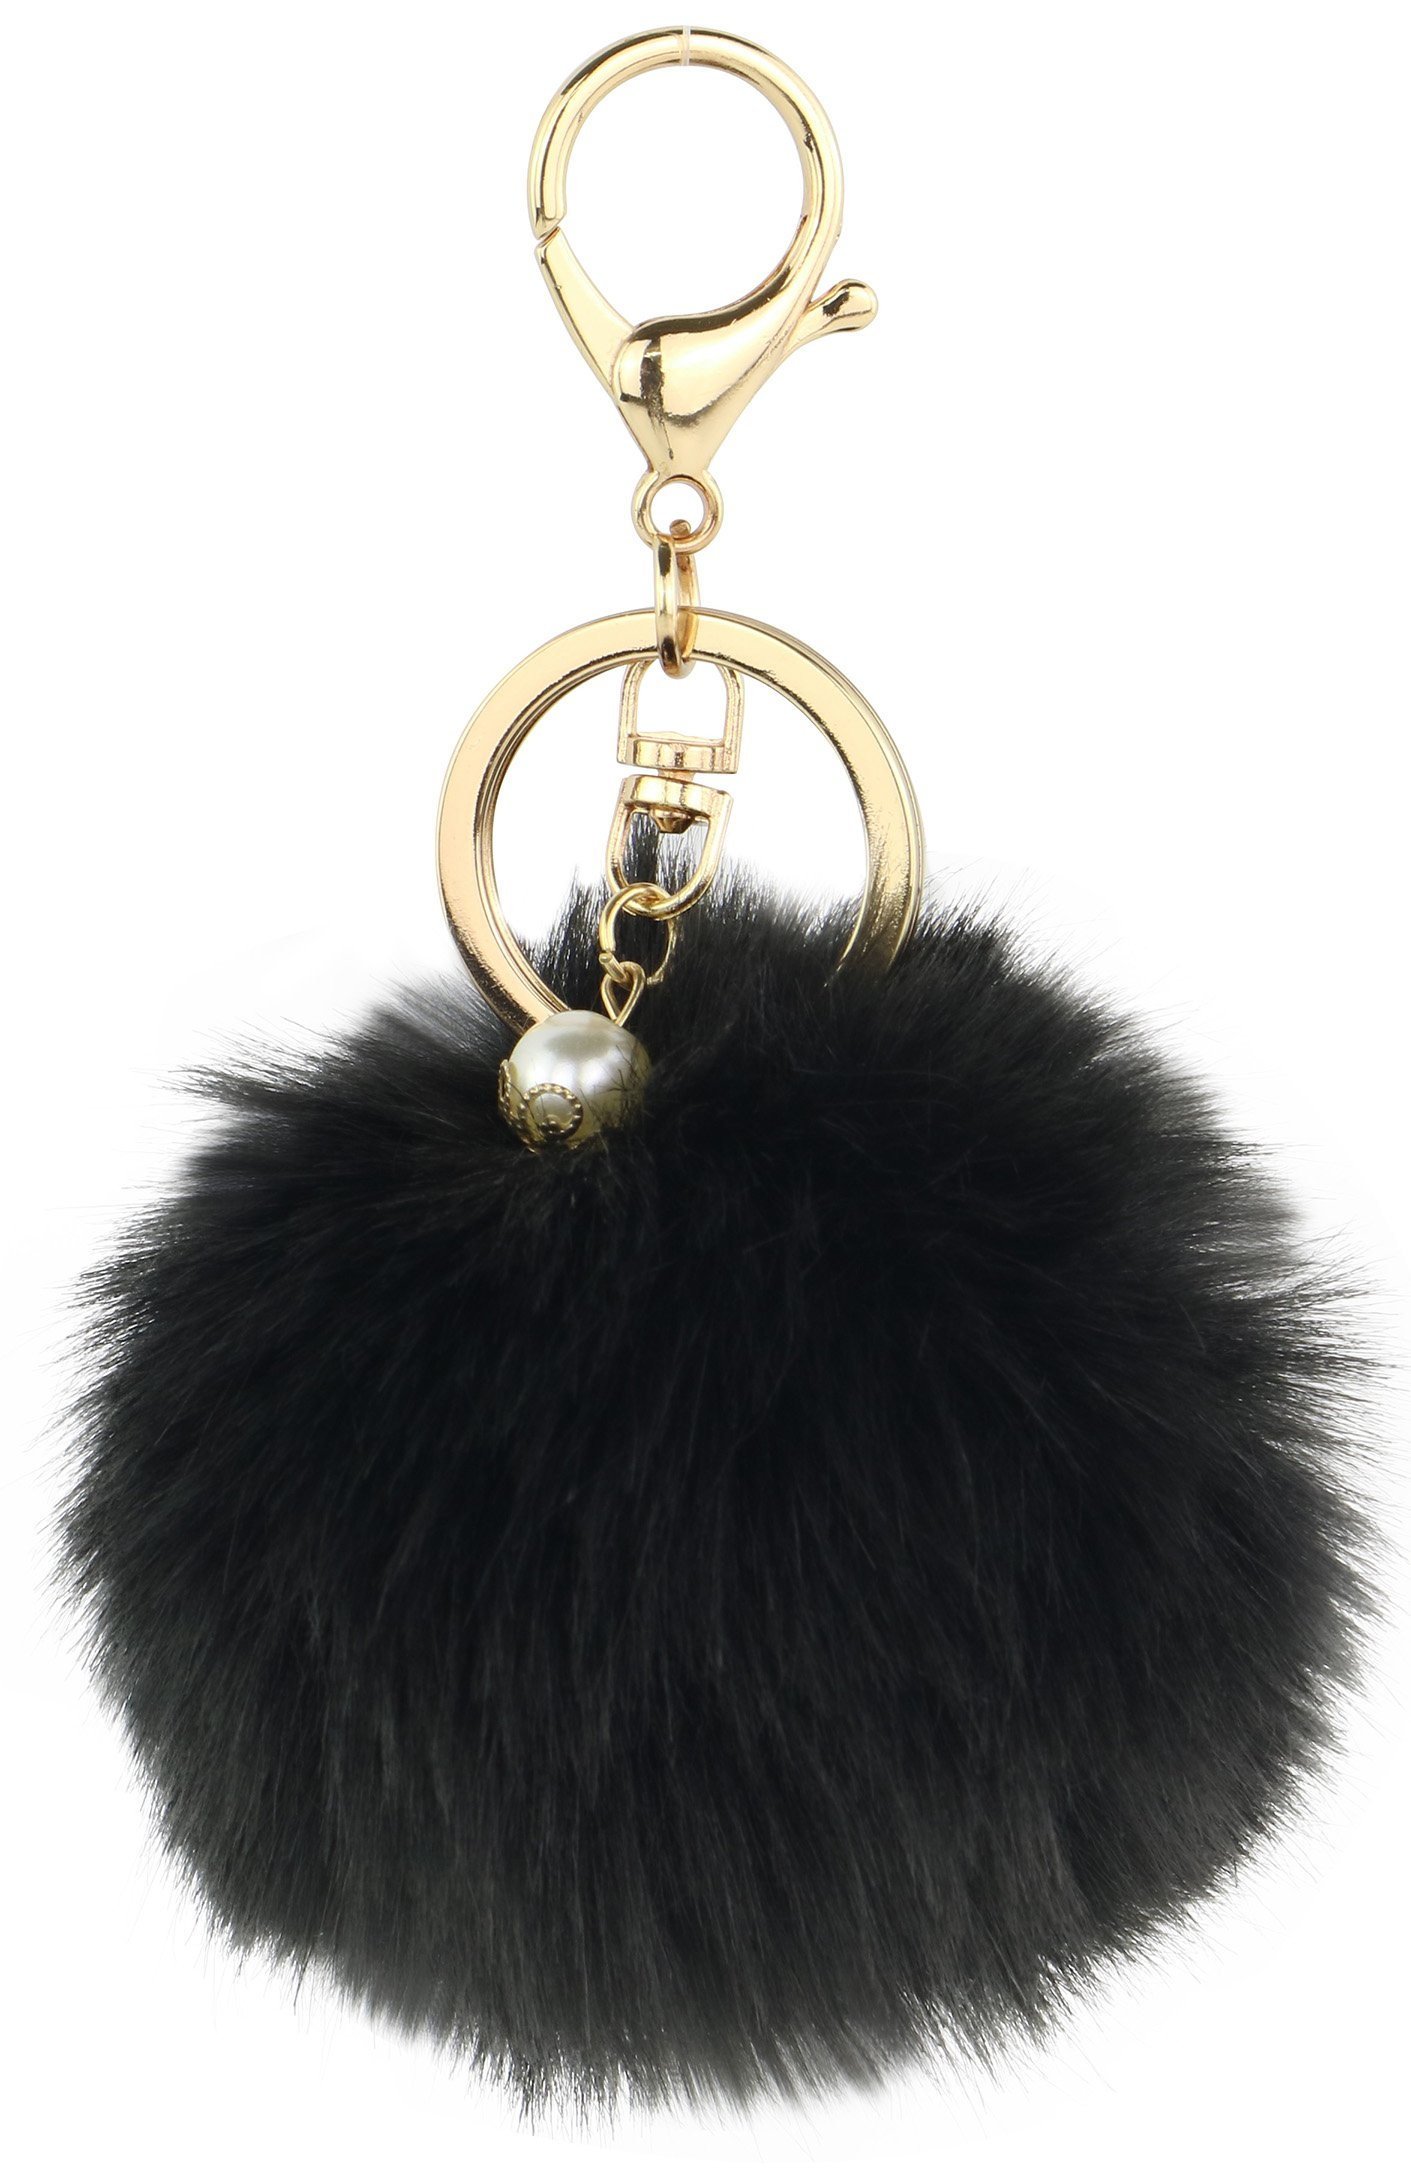 Galleon - Key Chain Accessories For Women - Black Faux Fur Ball Charm And  Artificial Pearl With Key Ring d4144d028